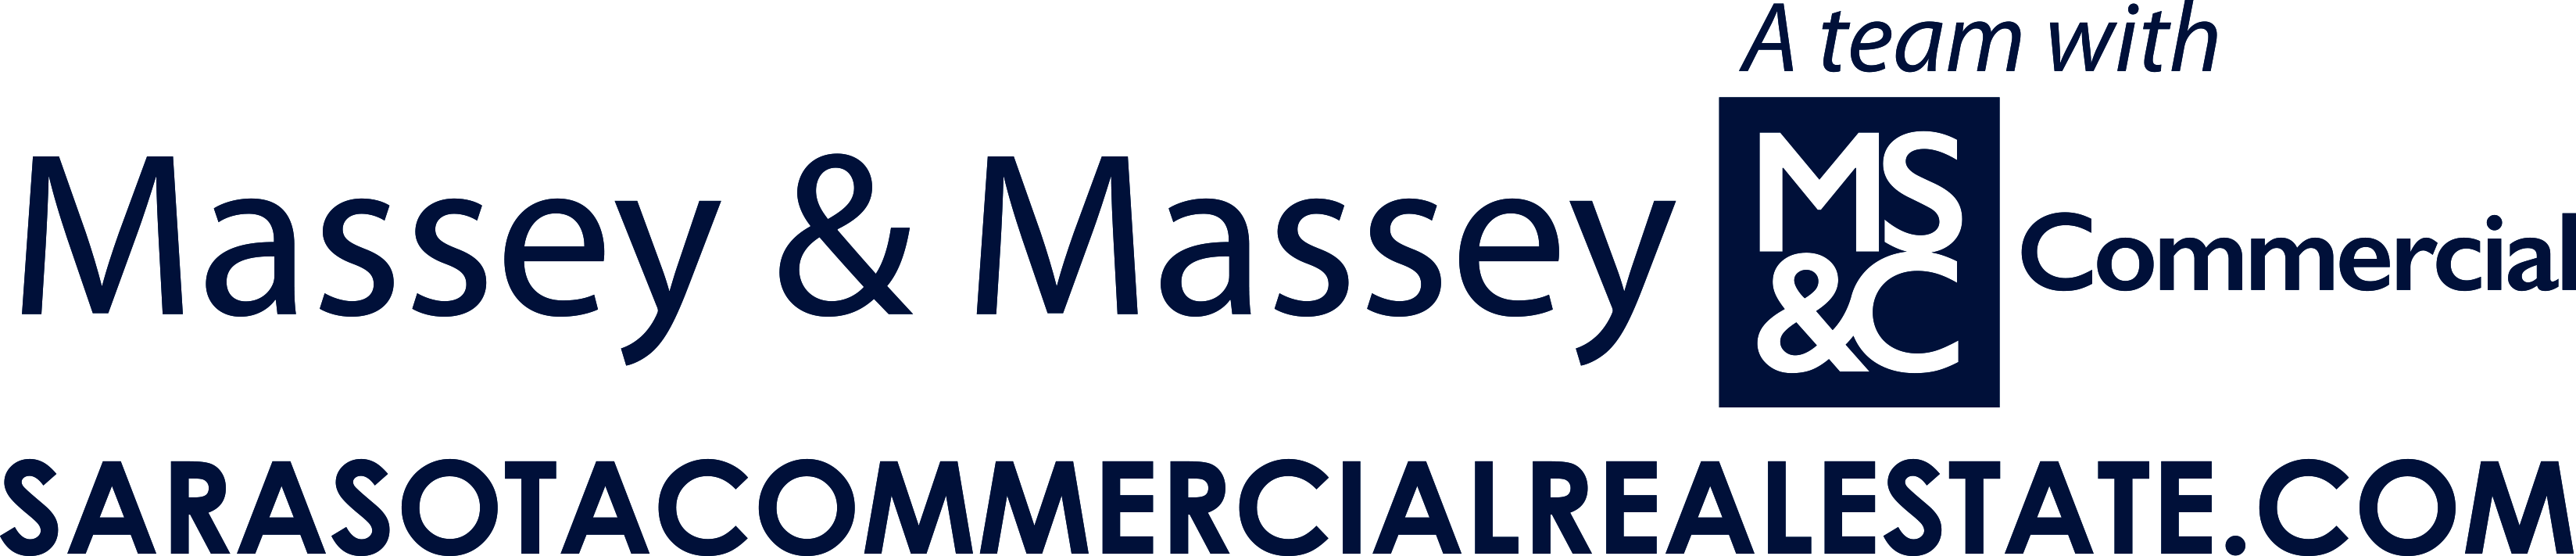 Massey & Massey Commercial Real Estate